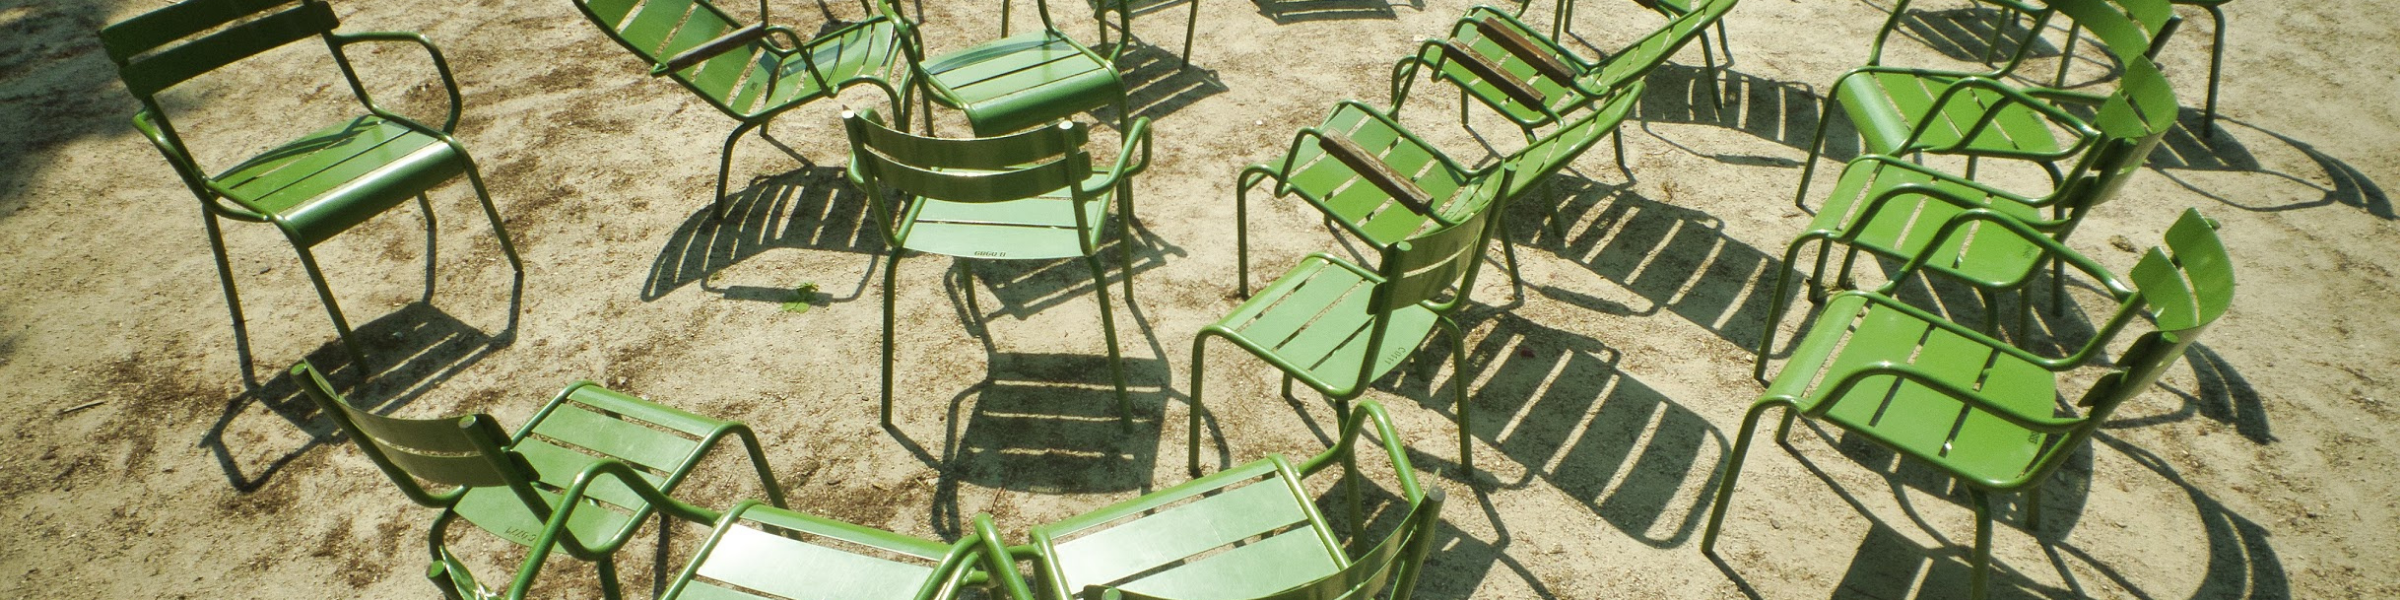 Green metal chairs outside